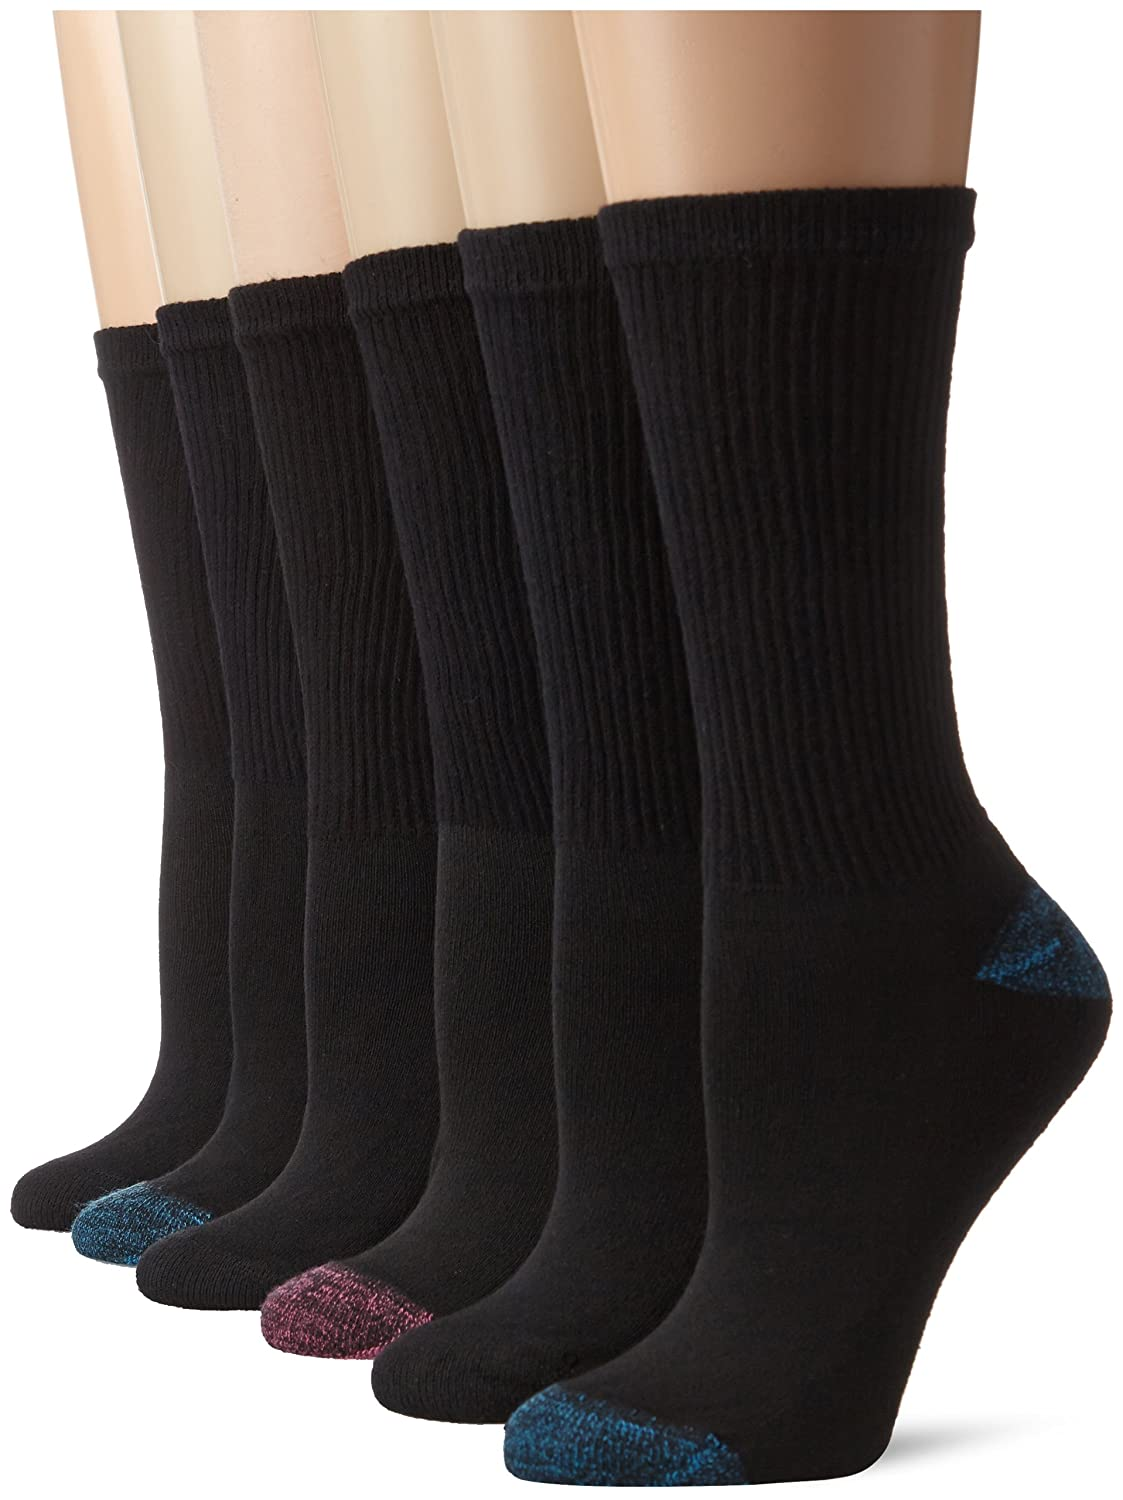 Hanes Women's Big-Tall Comfort Blend Crew Extended Size Sock, Black Assorted, Shoe Size 8-12/ Sock Size 10-12 (Pack of 6) Hanes Women's Socks 683/6P adidas socks american flag socks